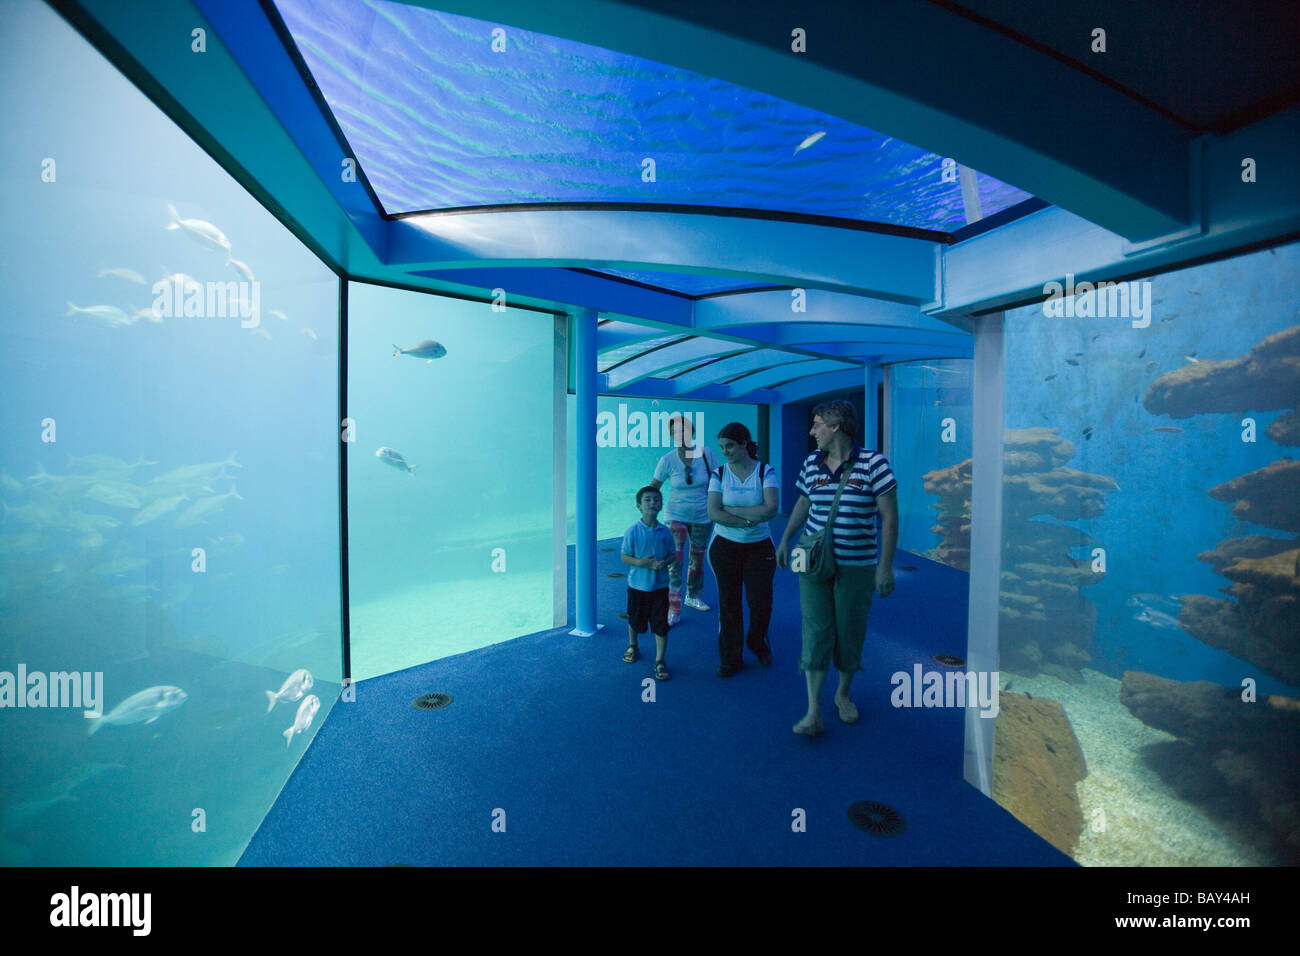 Family at Palma Aquarium, El Arenal, Playa de Palma, Mallorca Stock Photo, Ro...